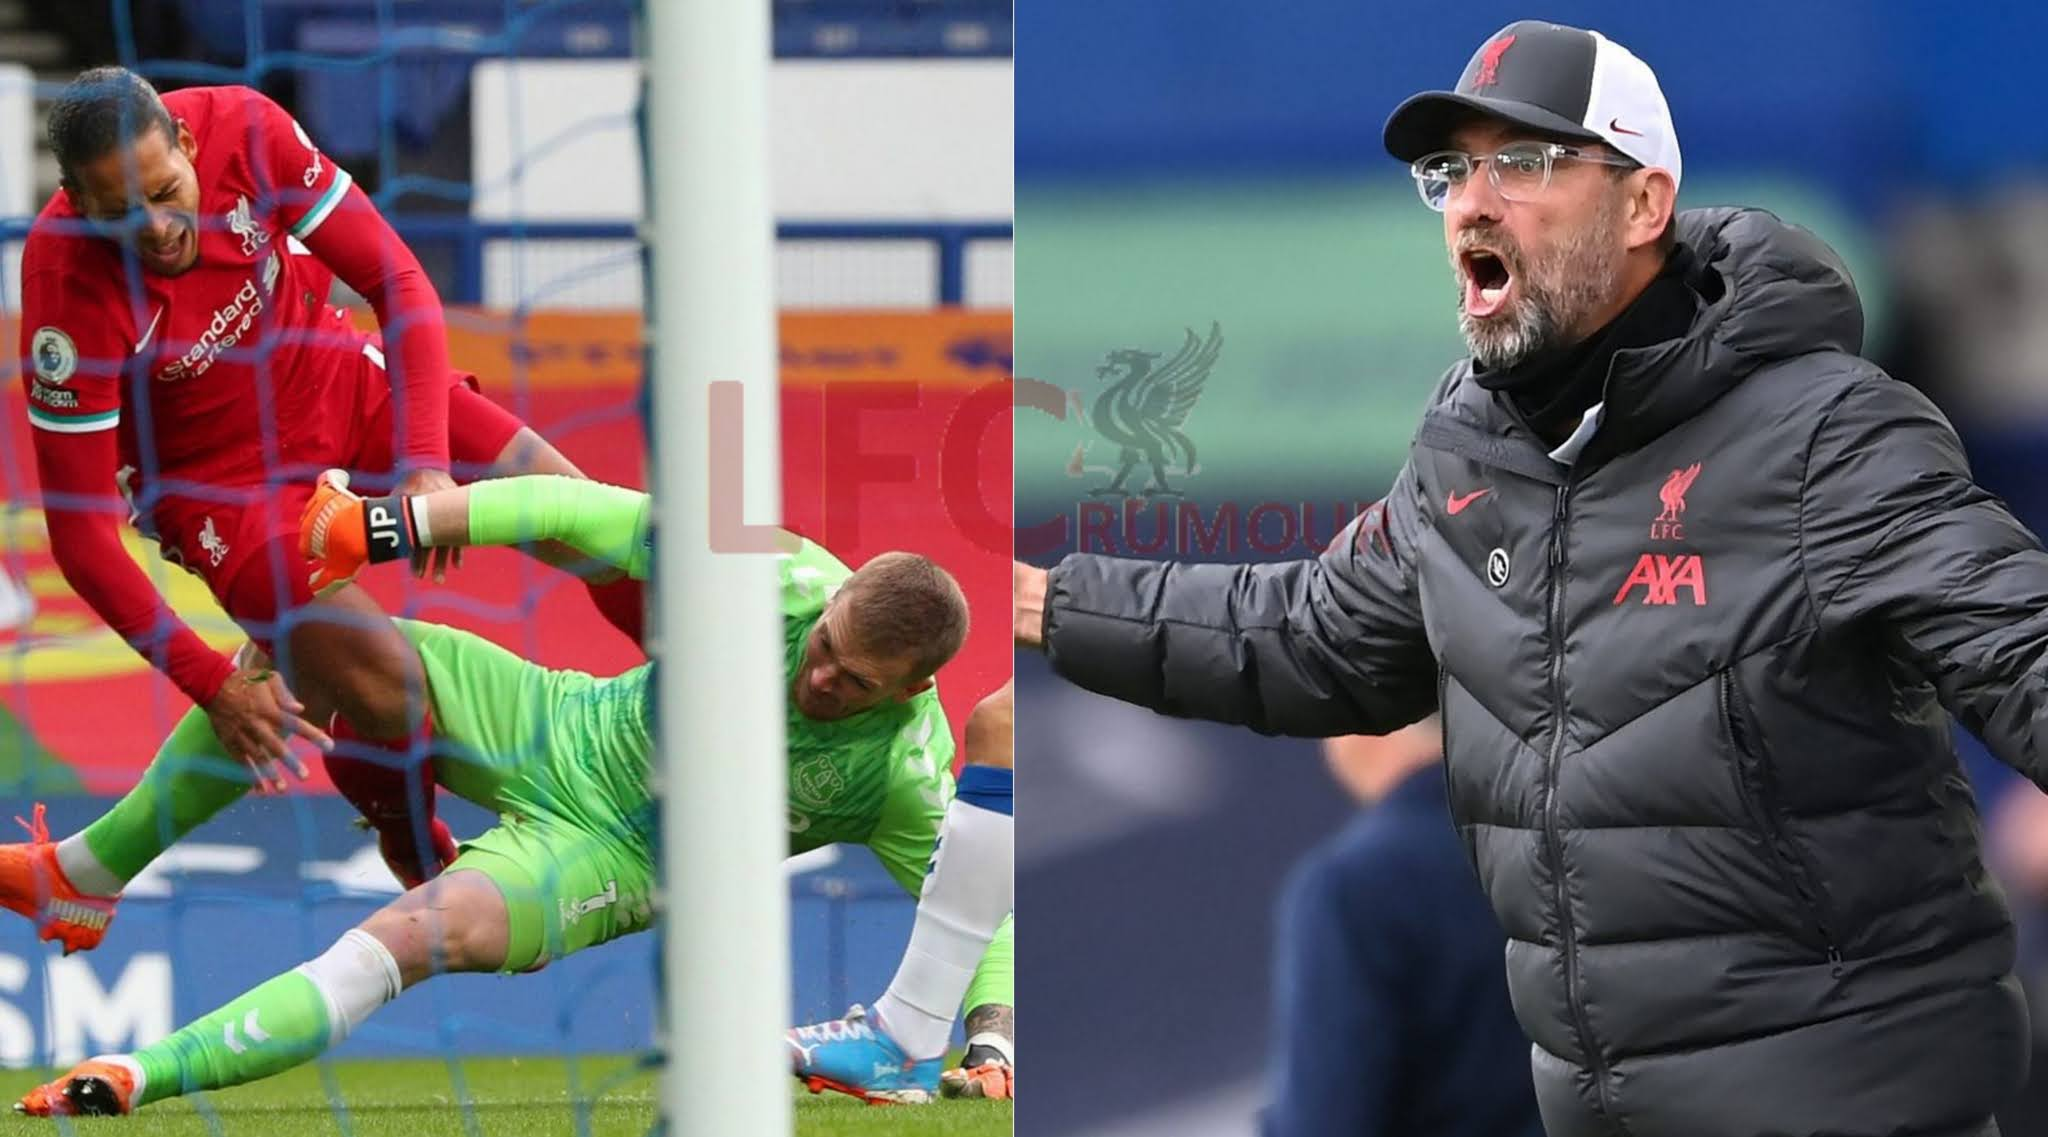 Jurgen Klopp questions poor officiating after a 2-2 draw at Goodison Park.